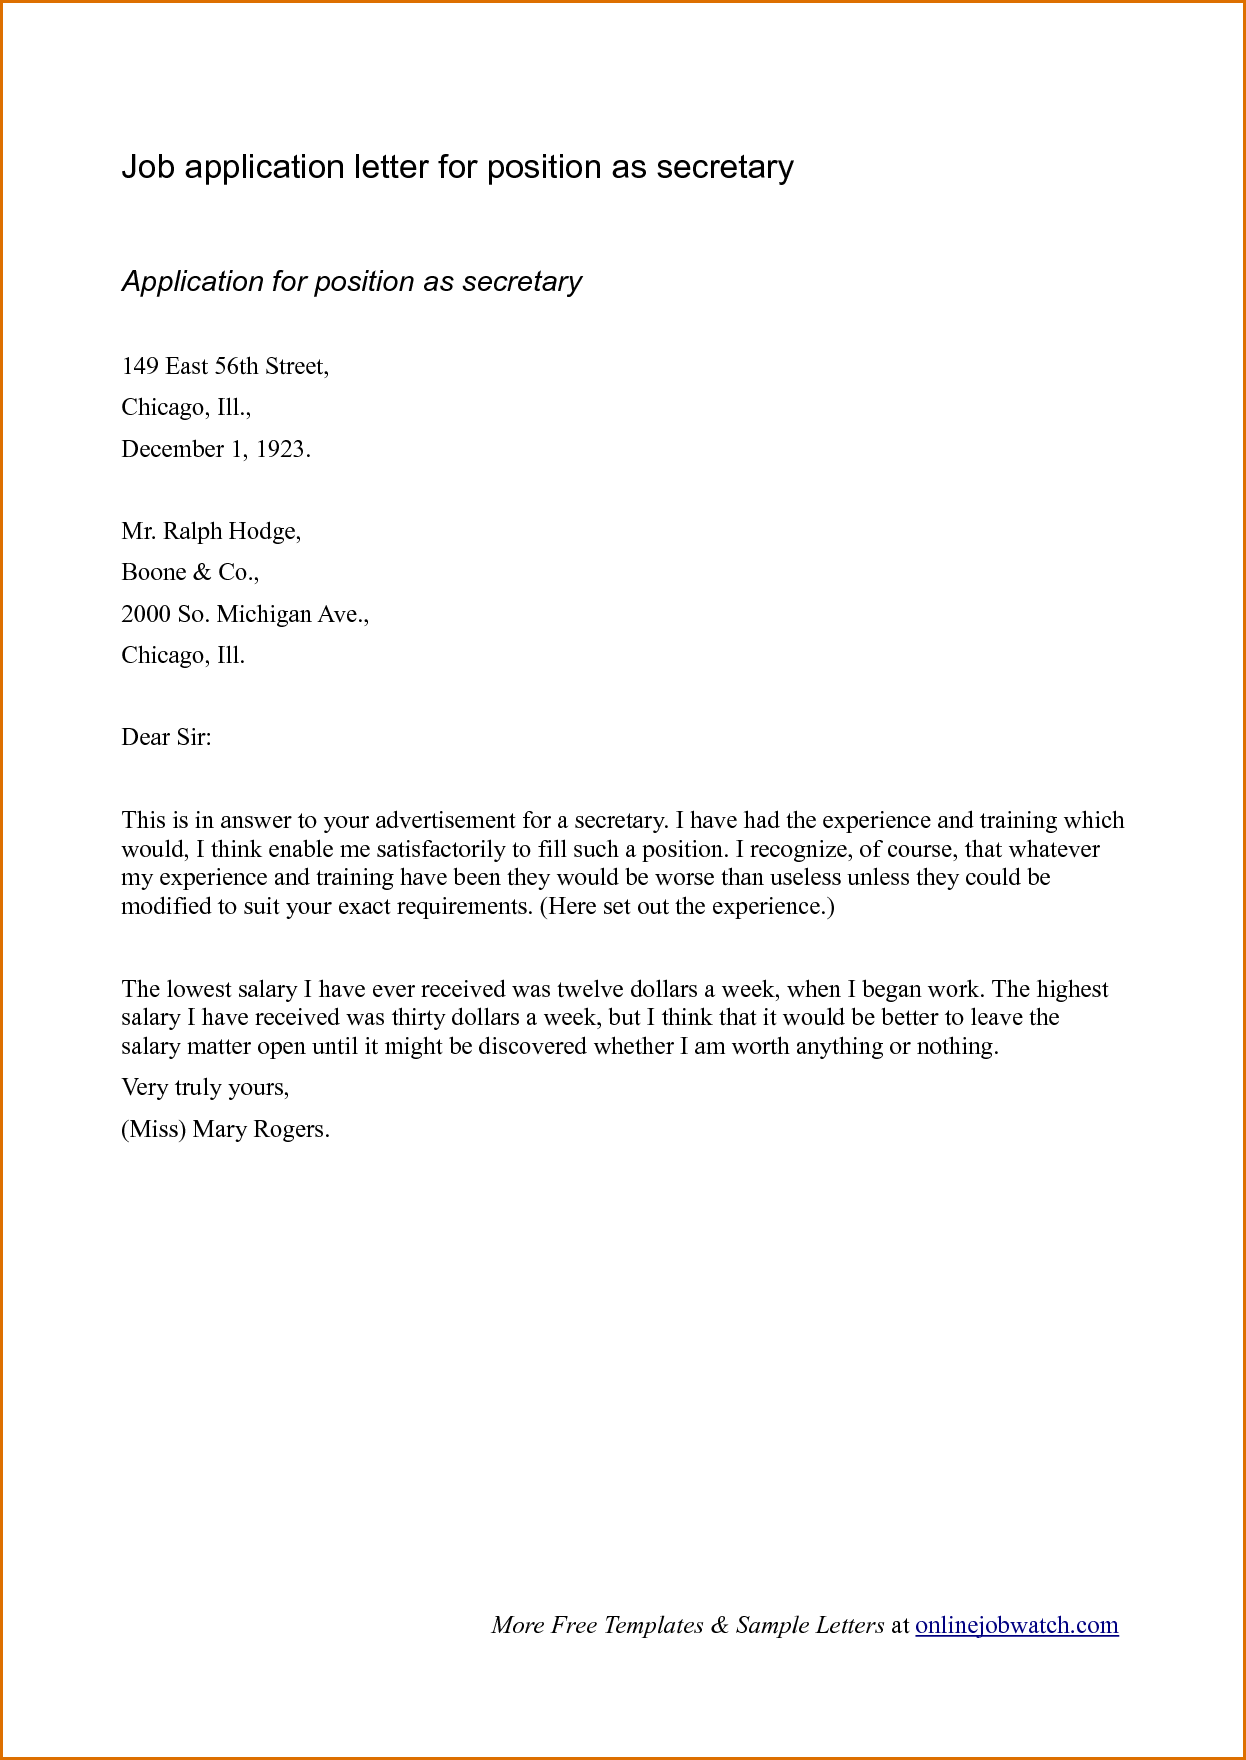 Sample cover letter format for job application for Example of a cover letter when applying for a job